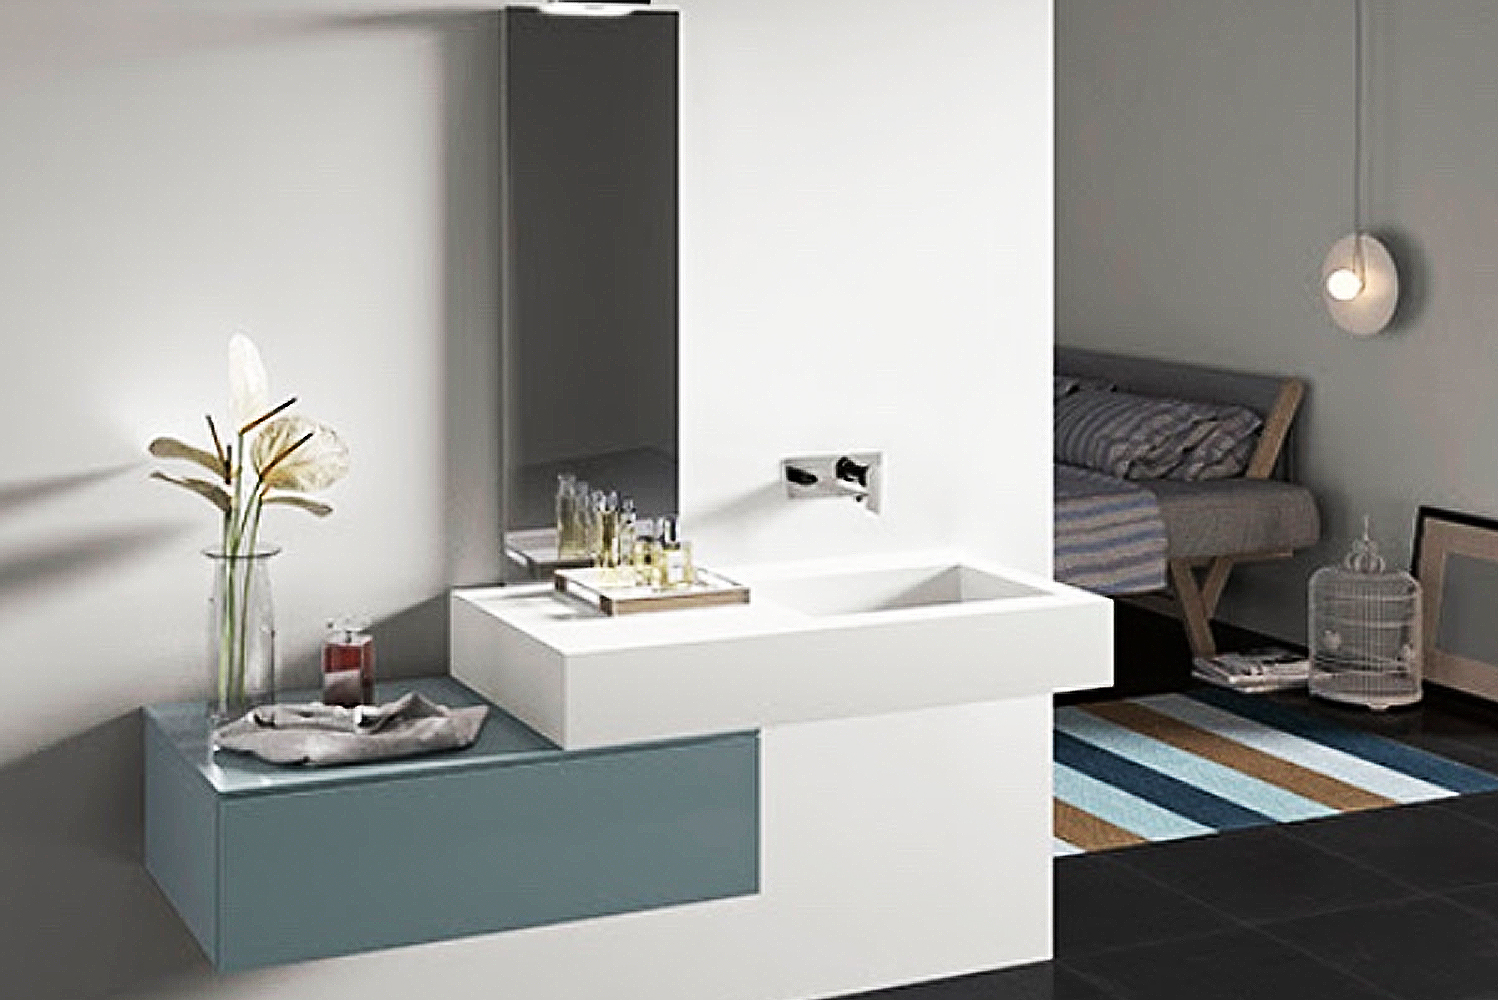 Integrated countertops come in matte white, grigio (cement-colored) or cappuccino, as well as glossy blues and whites.